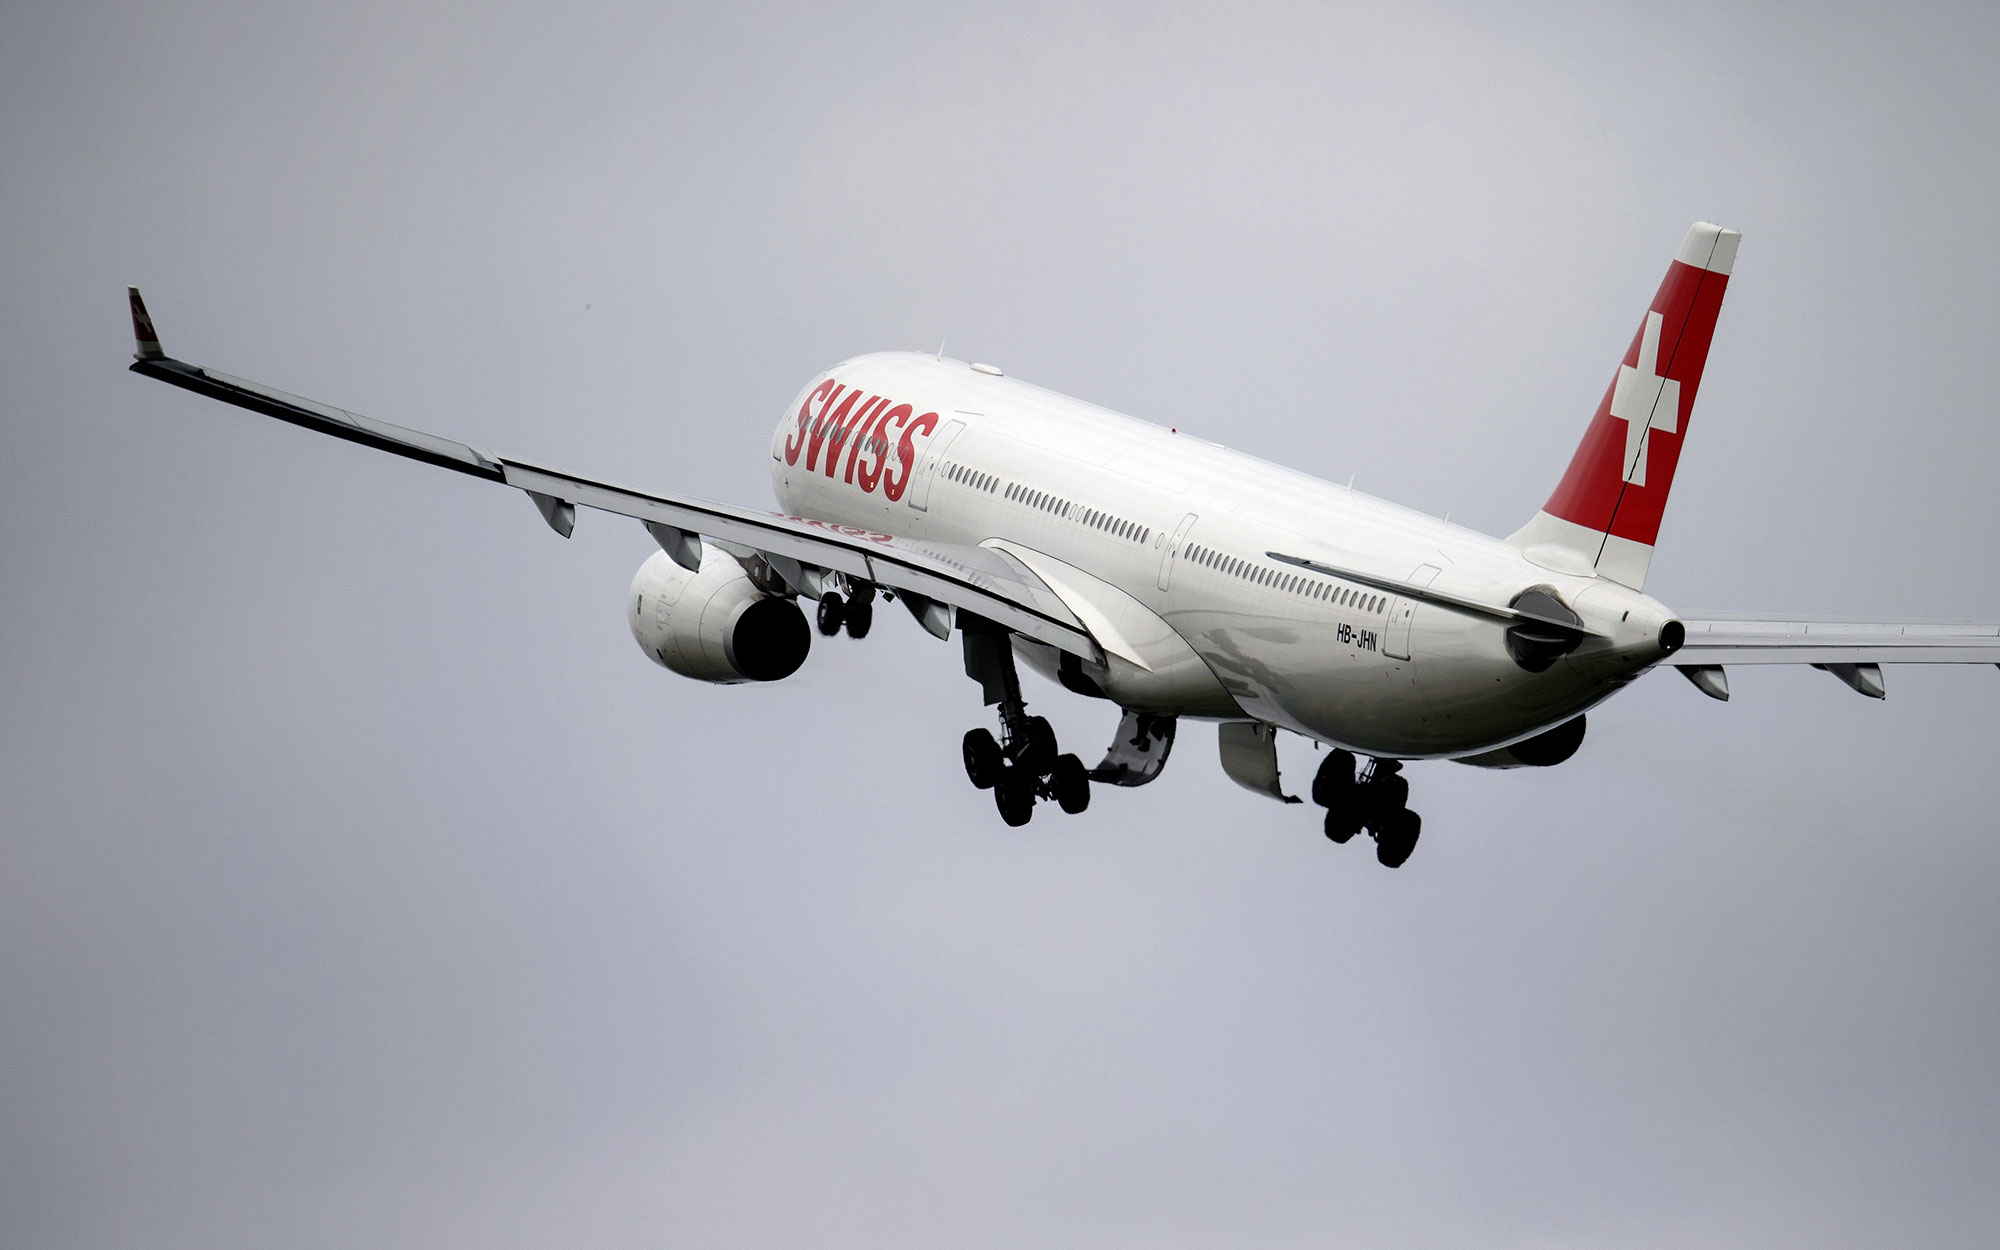 World's Best Airlines for Customer Service: Swiss, International